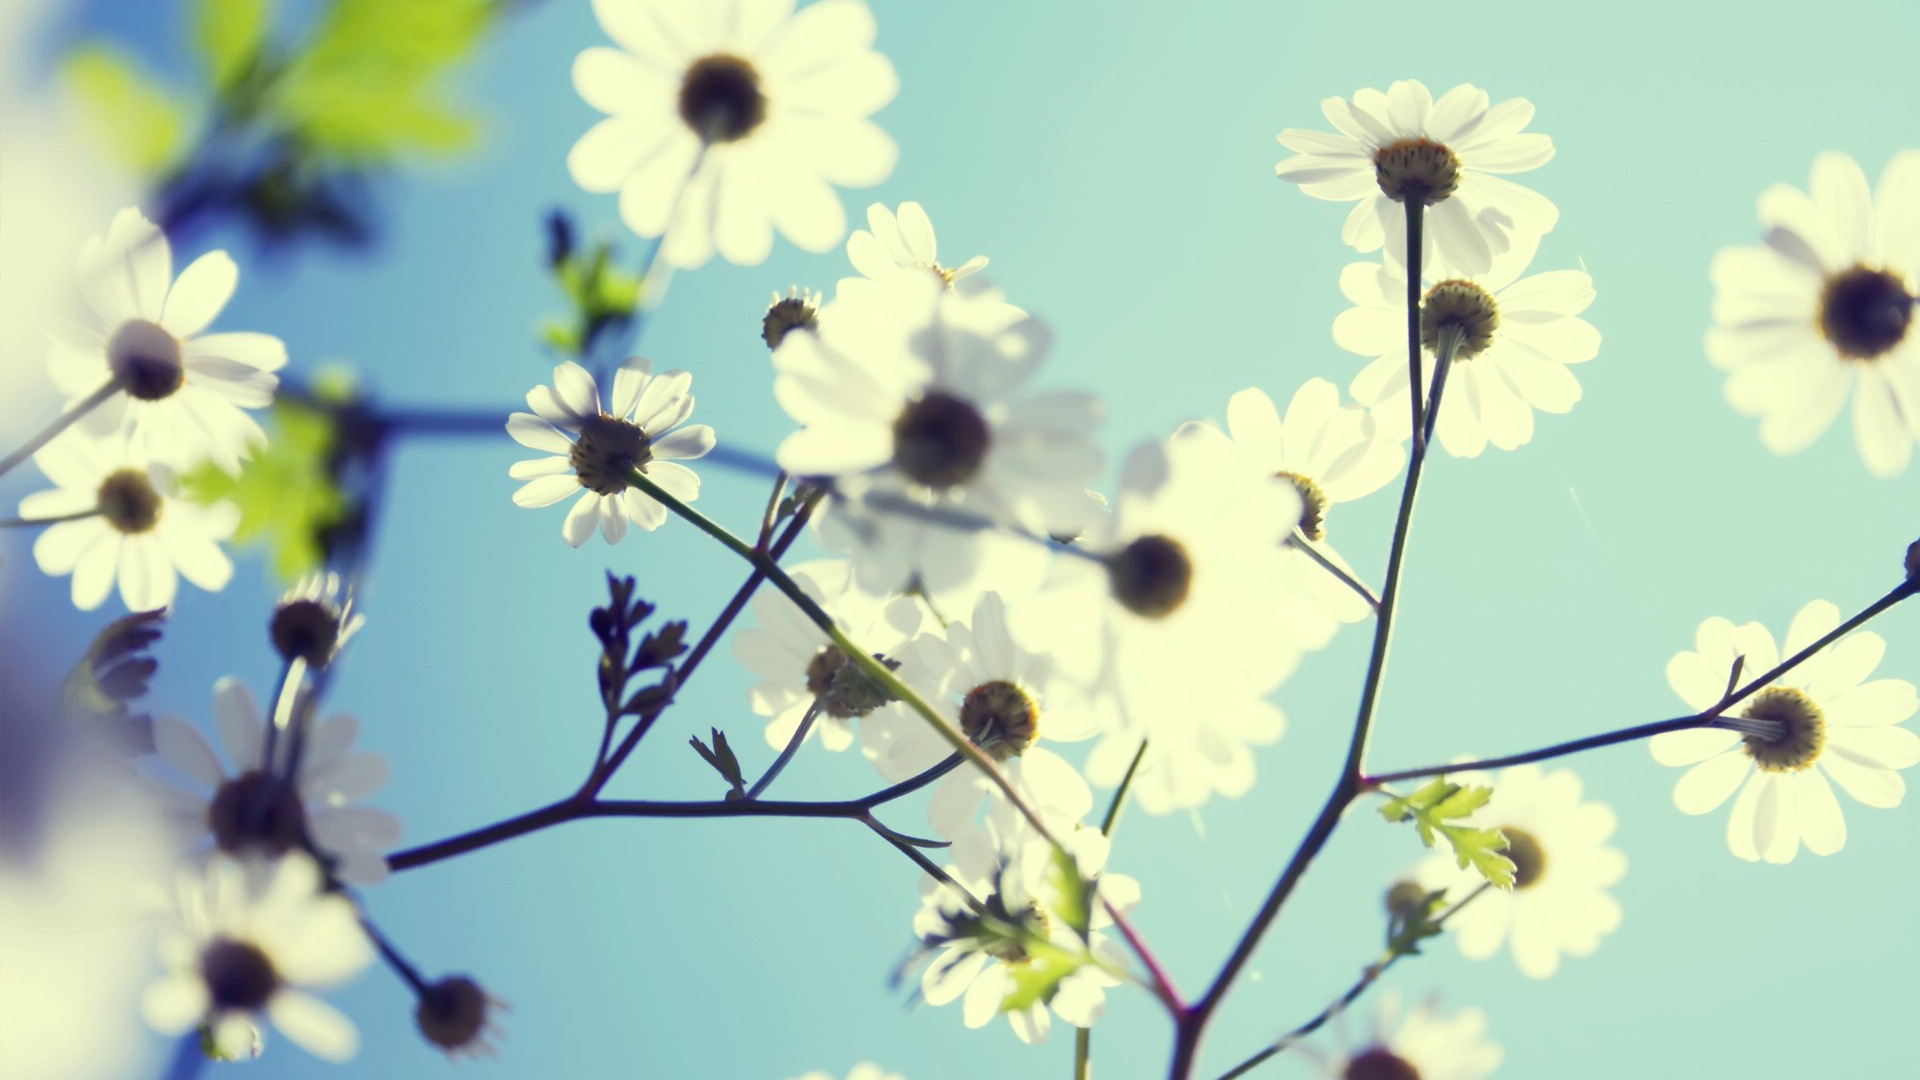 Popular Wallpaper High Quality Spring - spring-full-hd_122038784  Image_295434.jpg